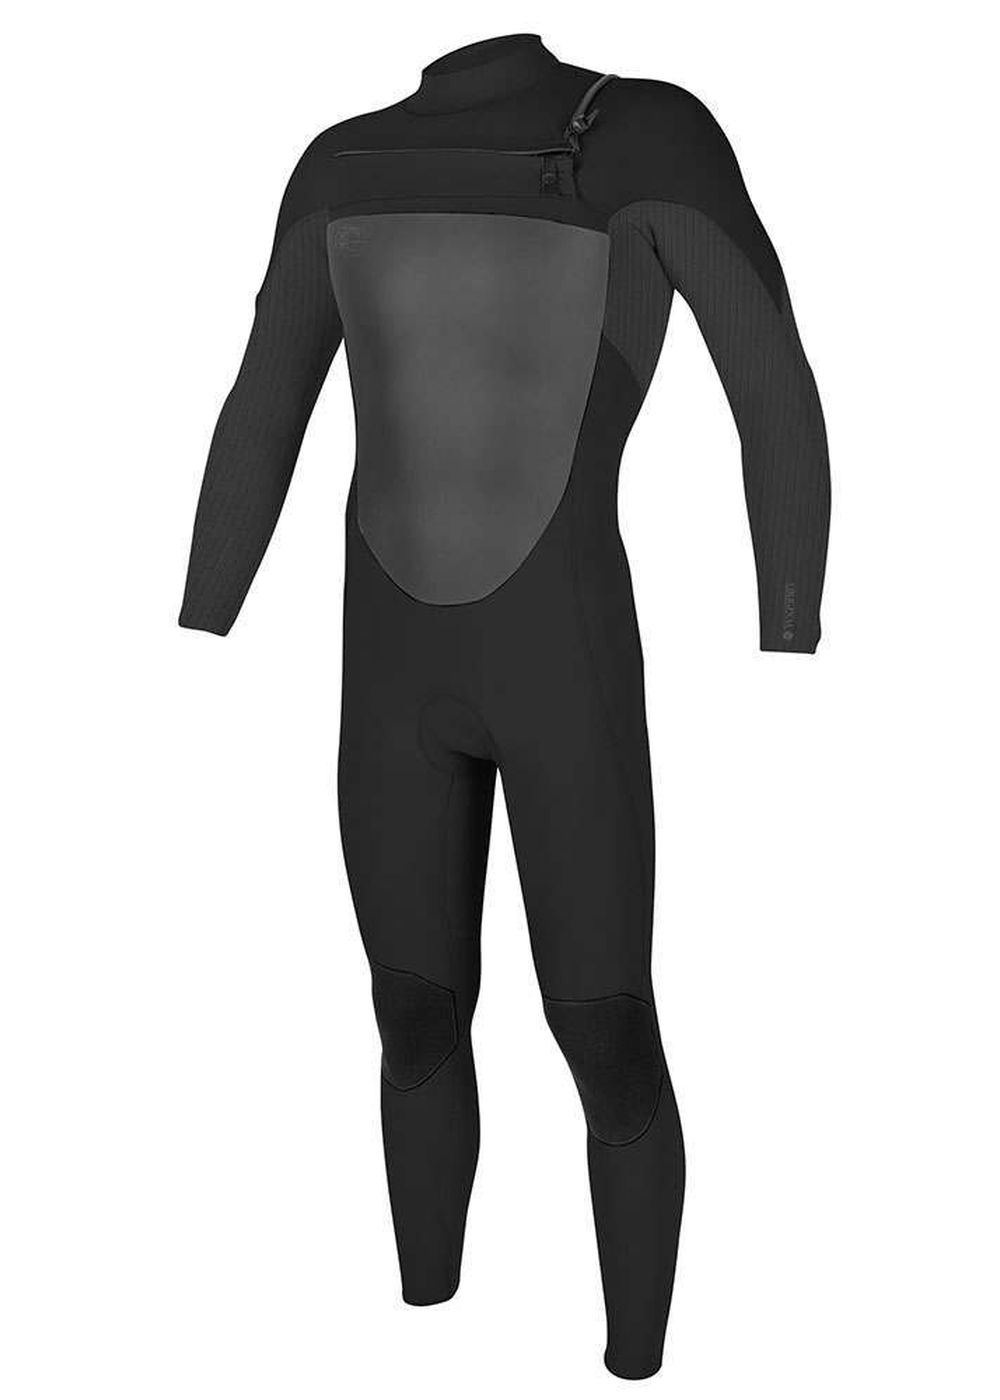 Oneill Original Fz 5/4 Wetsuit 2018 Blk/graphpin Picture